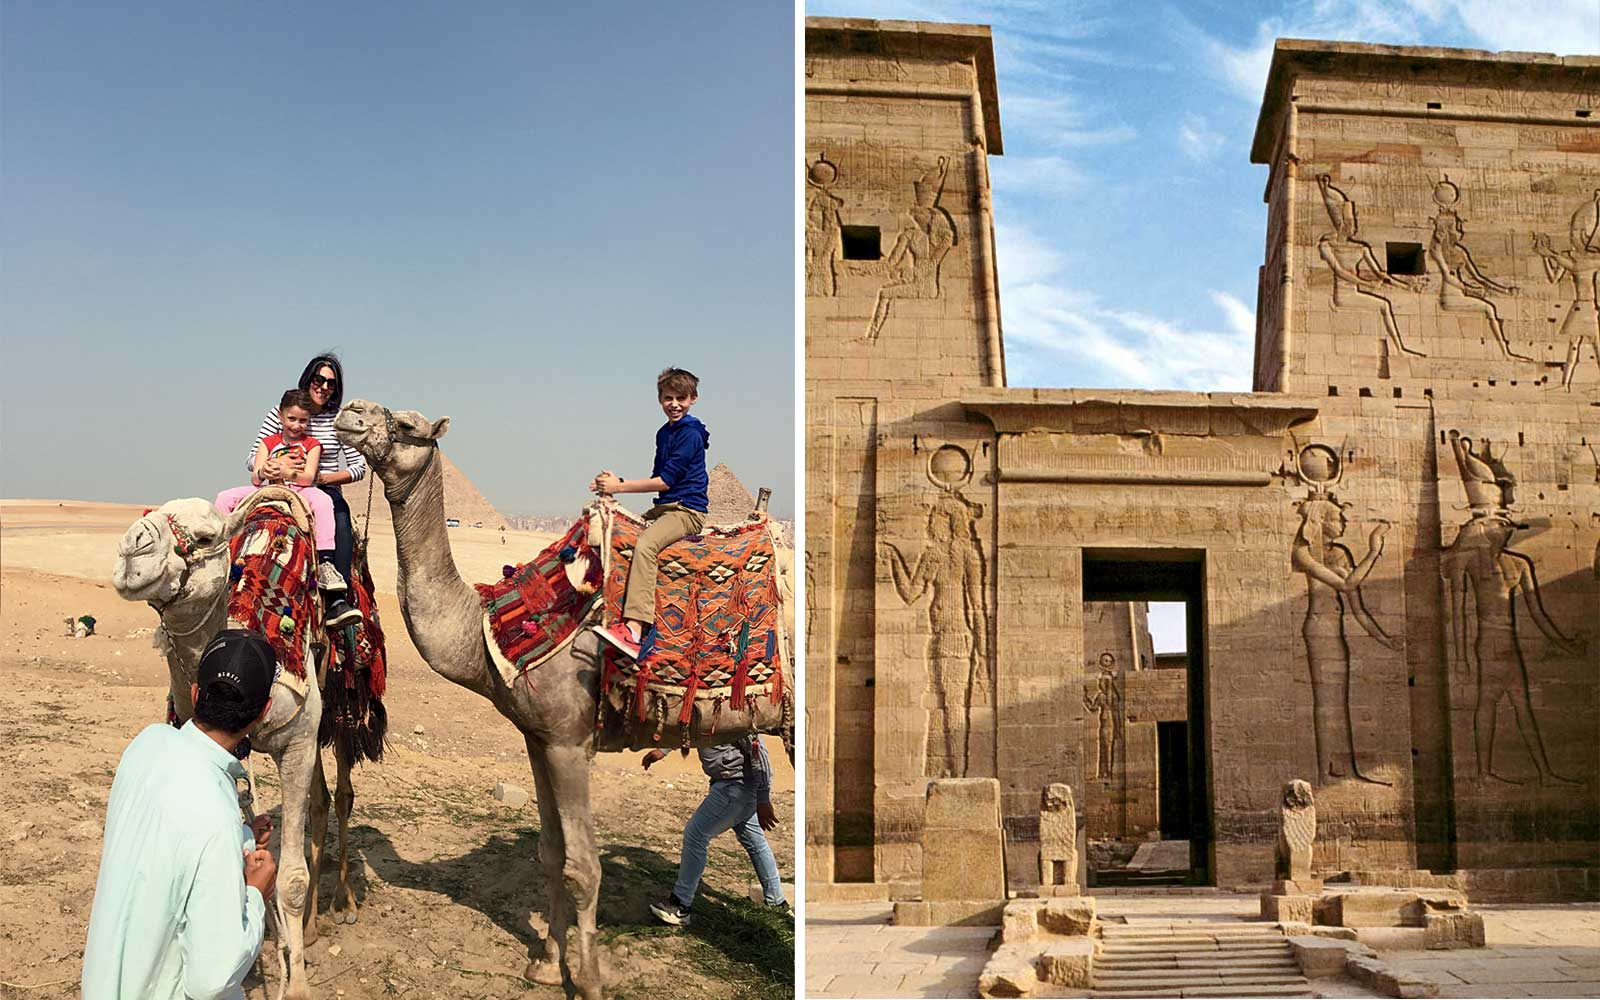 Heidi Mitchel and Kids Riding Camels in Egypt; Temple of Isis